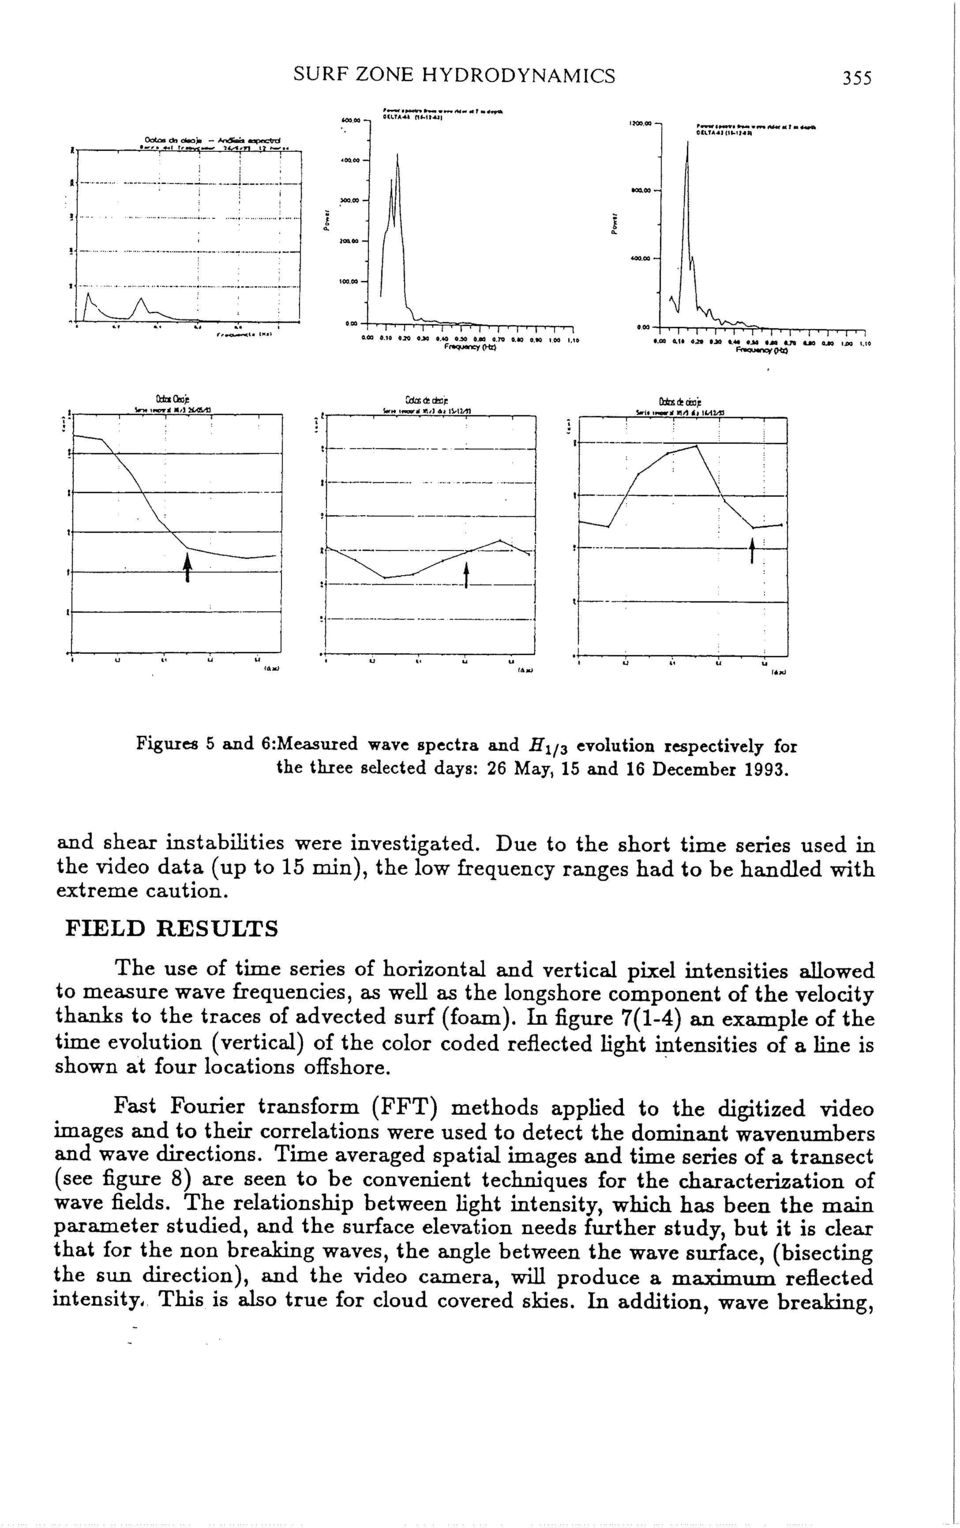 FIELD RESULTS The use of time series of horizontal and vertical pixel intensities auowed to measure wave frequencies, as weu as the longshore component of the velocity thanks to the traces of